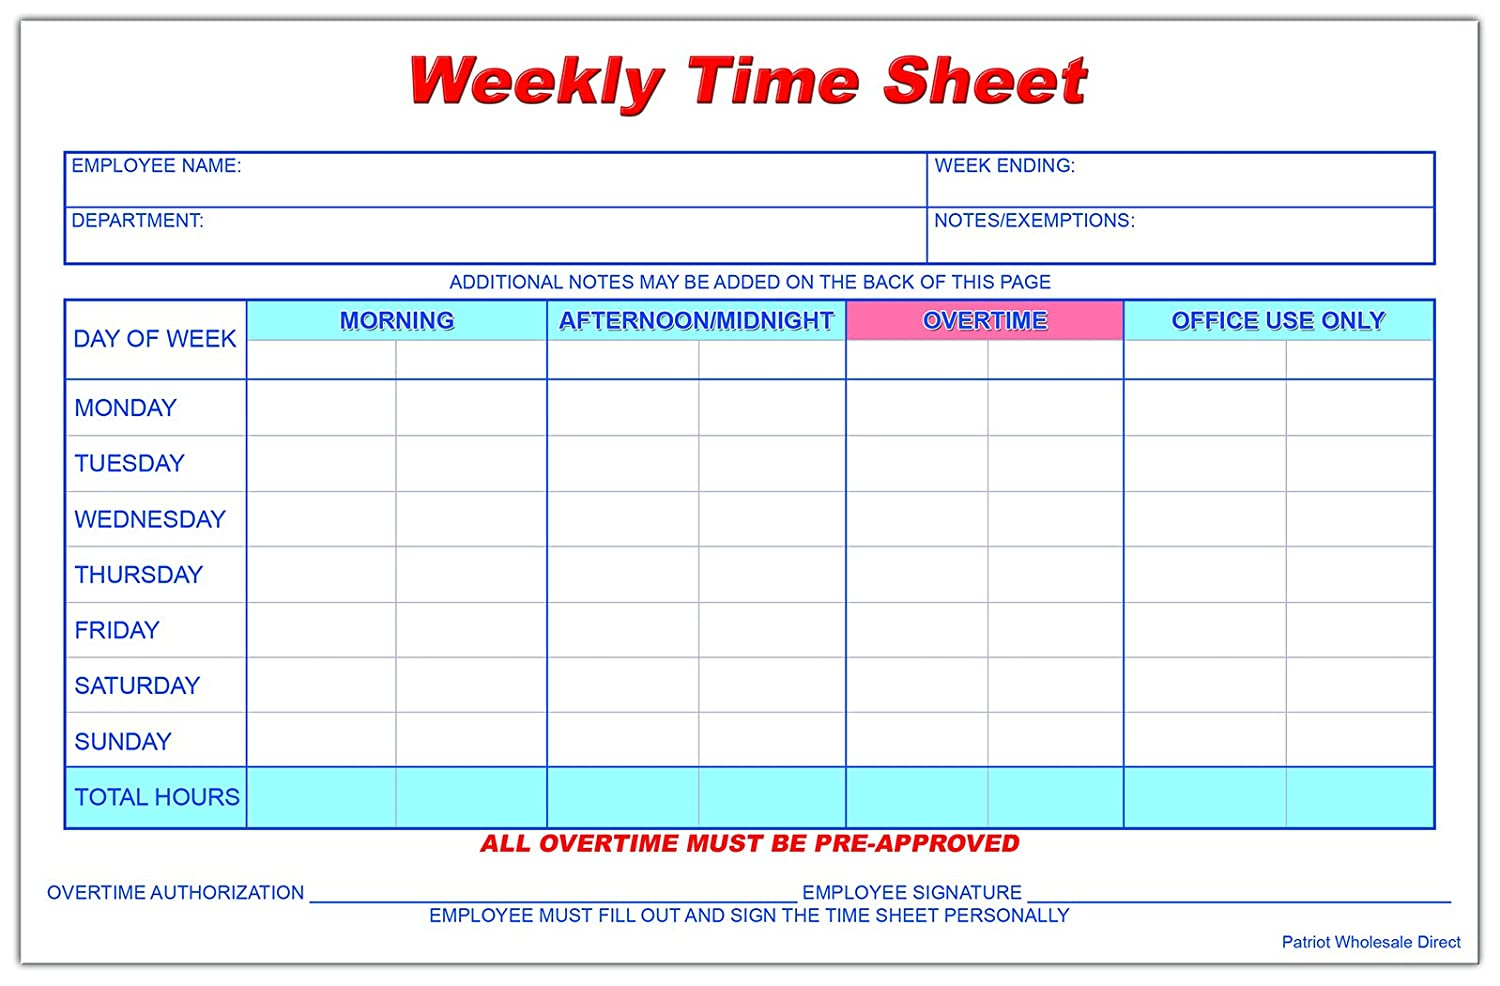 amazon com weekly employee time sheet 8 5 x 5 5 inches 50 sheets